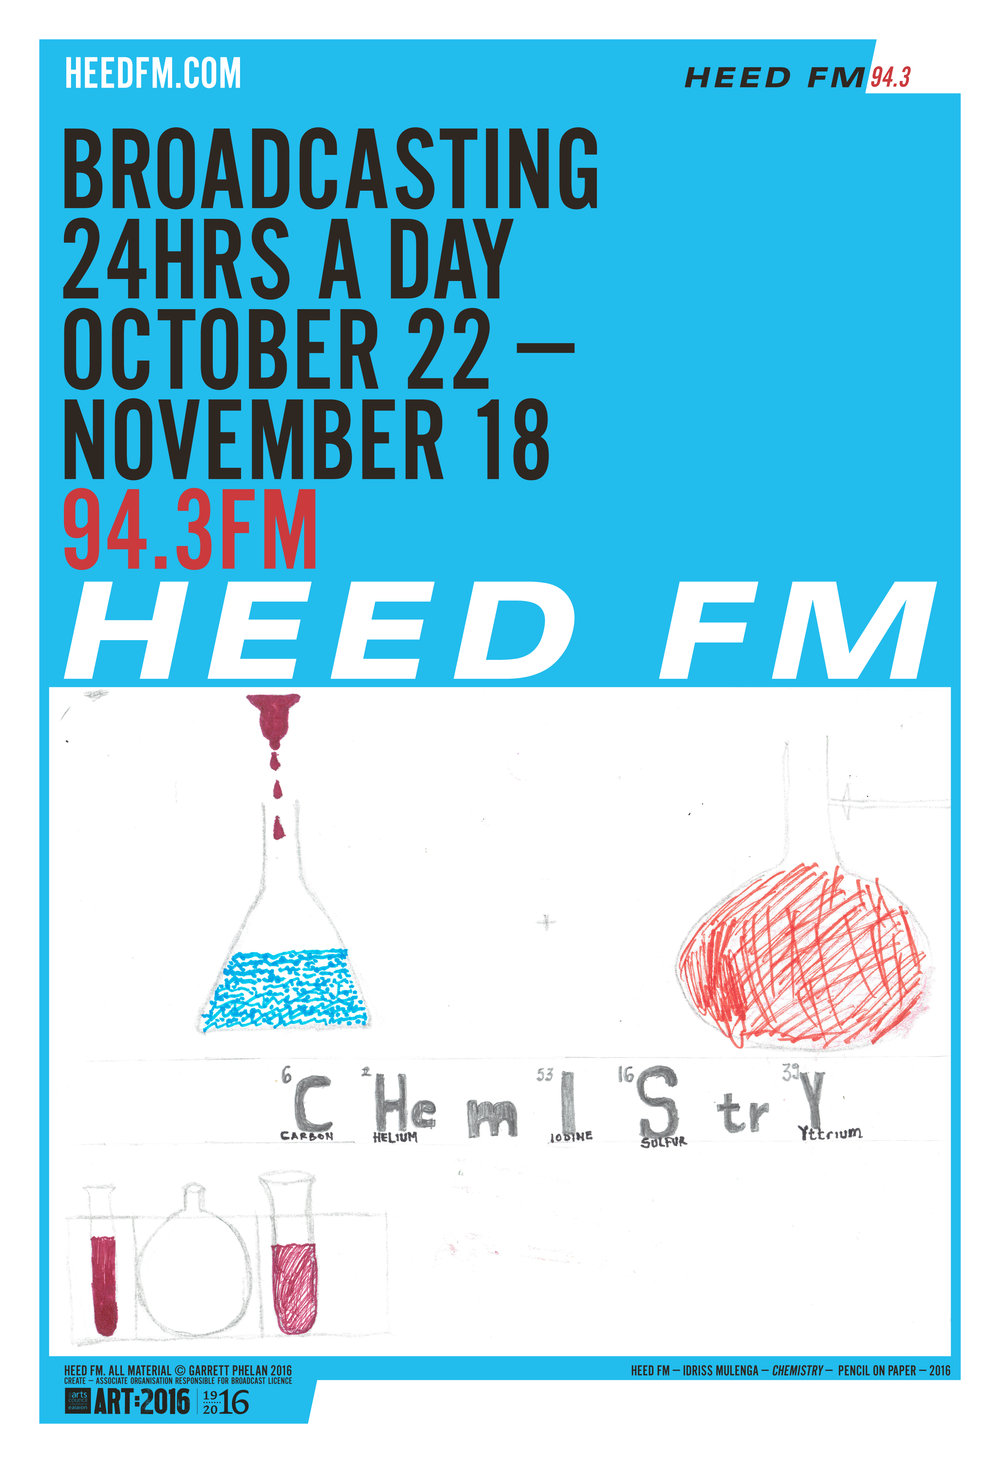 heed fm 4 sheets artwork-16.jpg